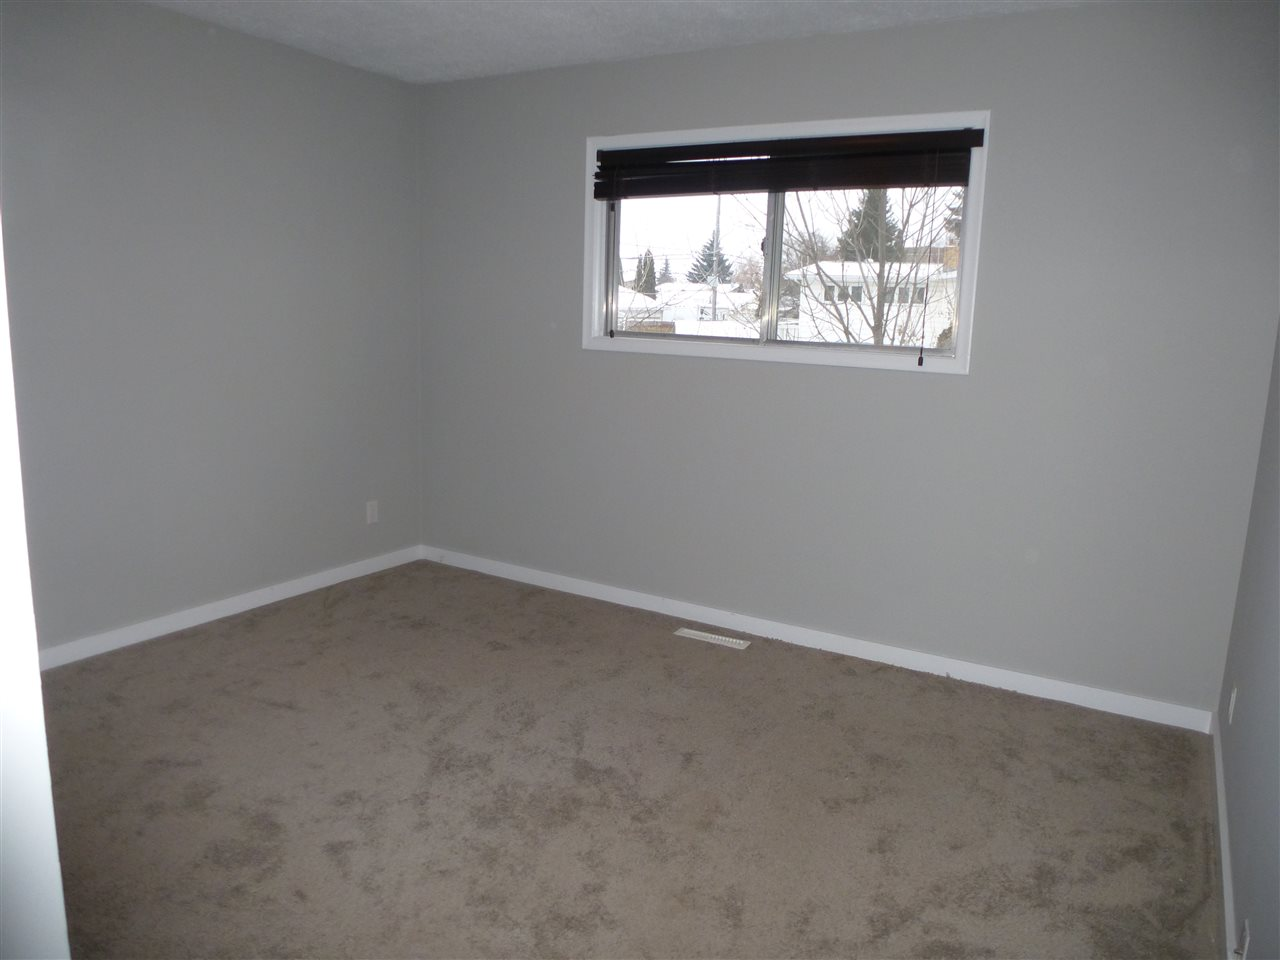 Photo 10: 8810 159A ST NW in Edmonton: Zone 22 House for sale : MLS® # E4044366